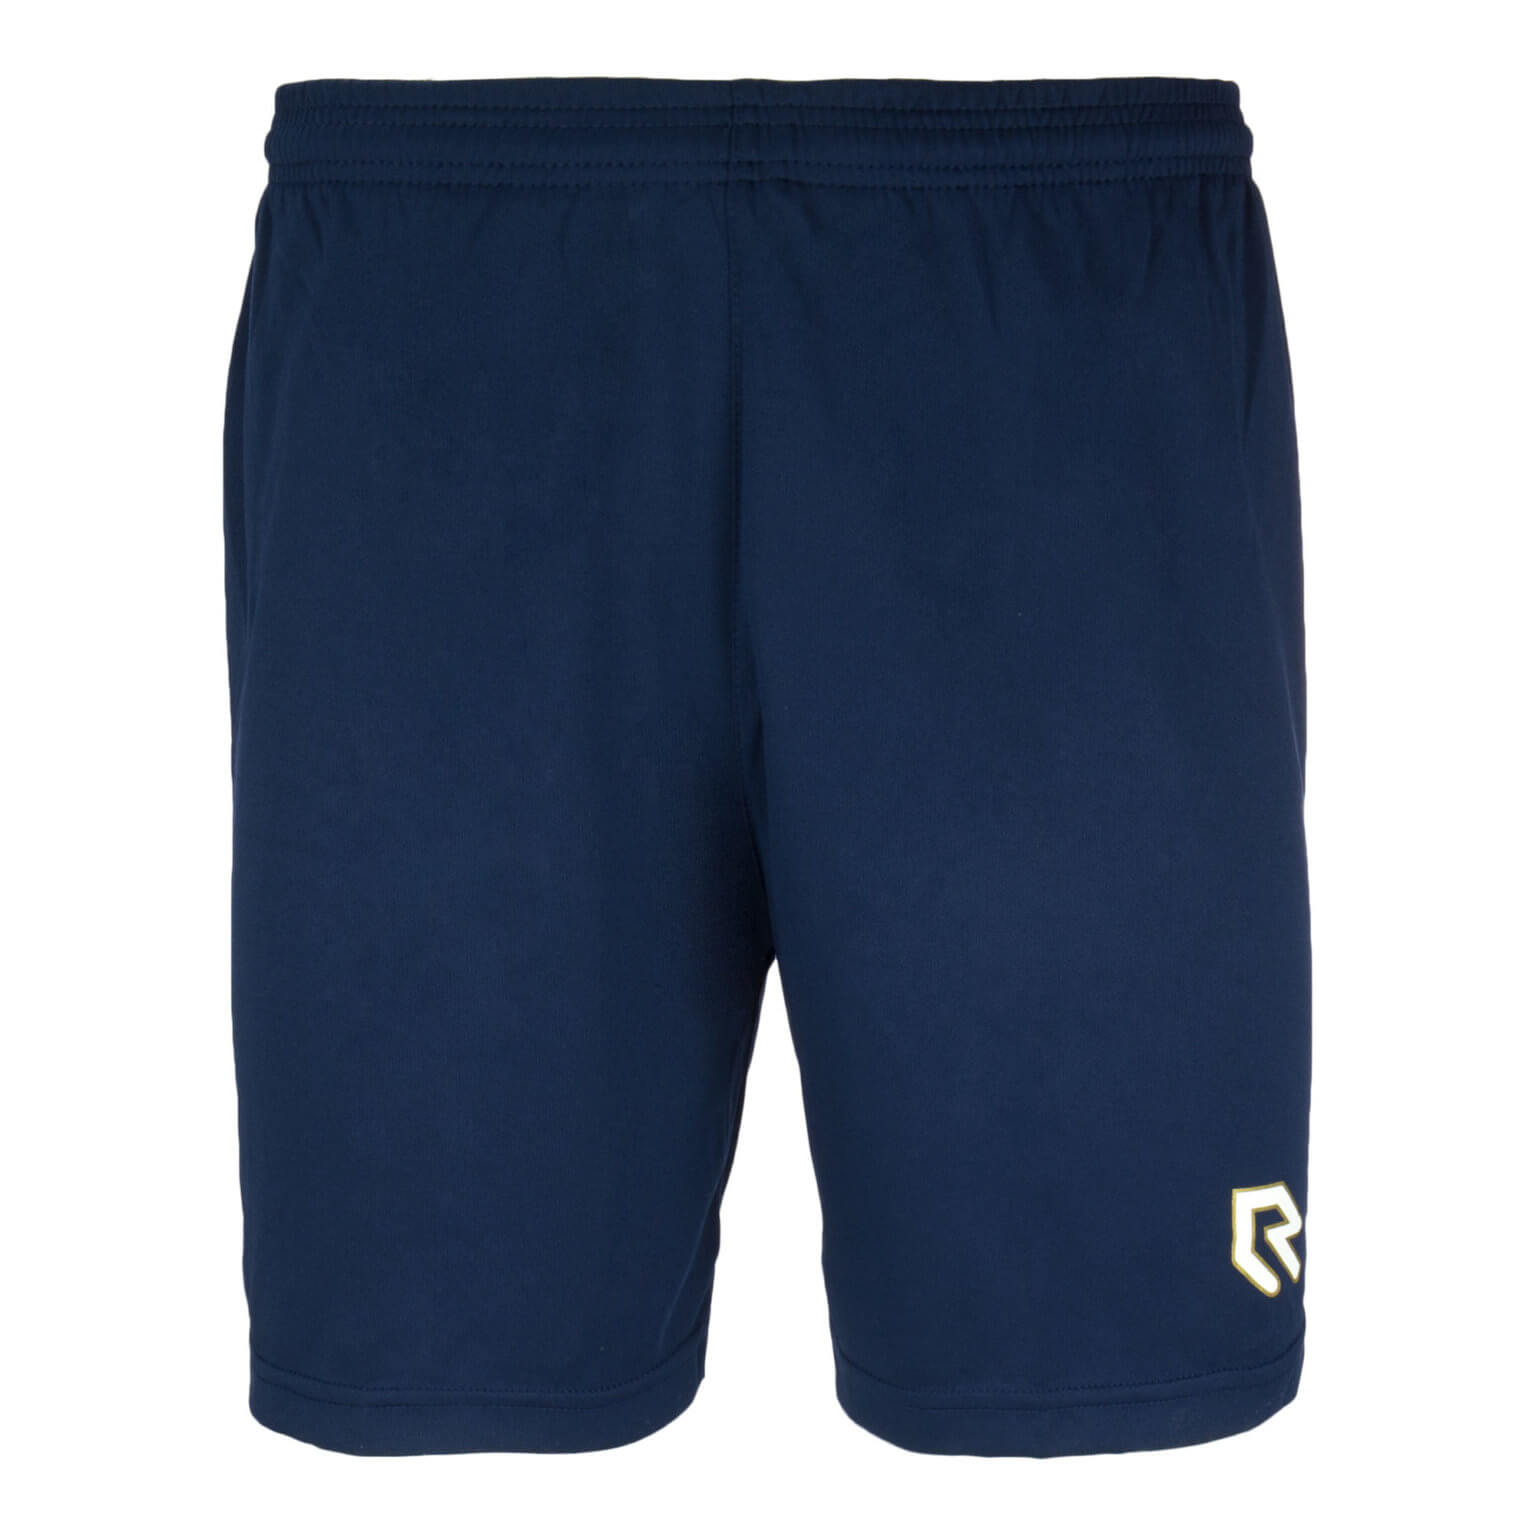 Robey Competitor Short - Navy